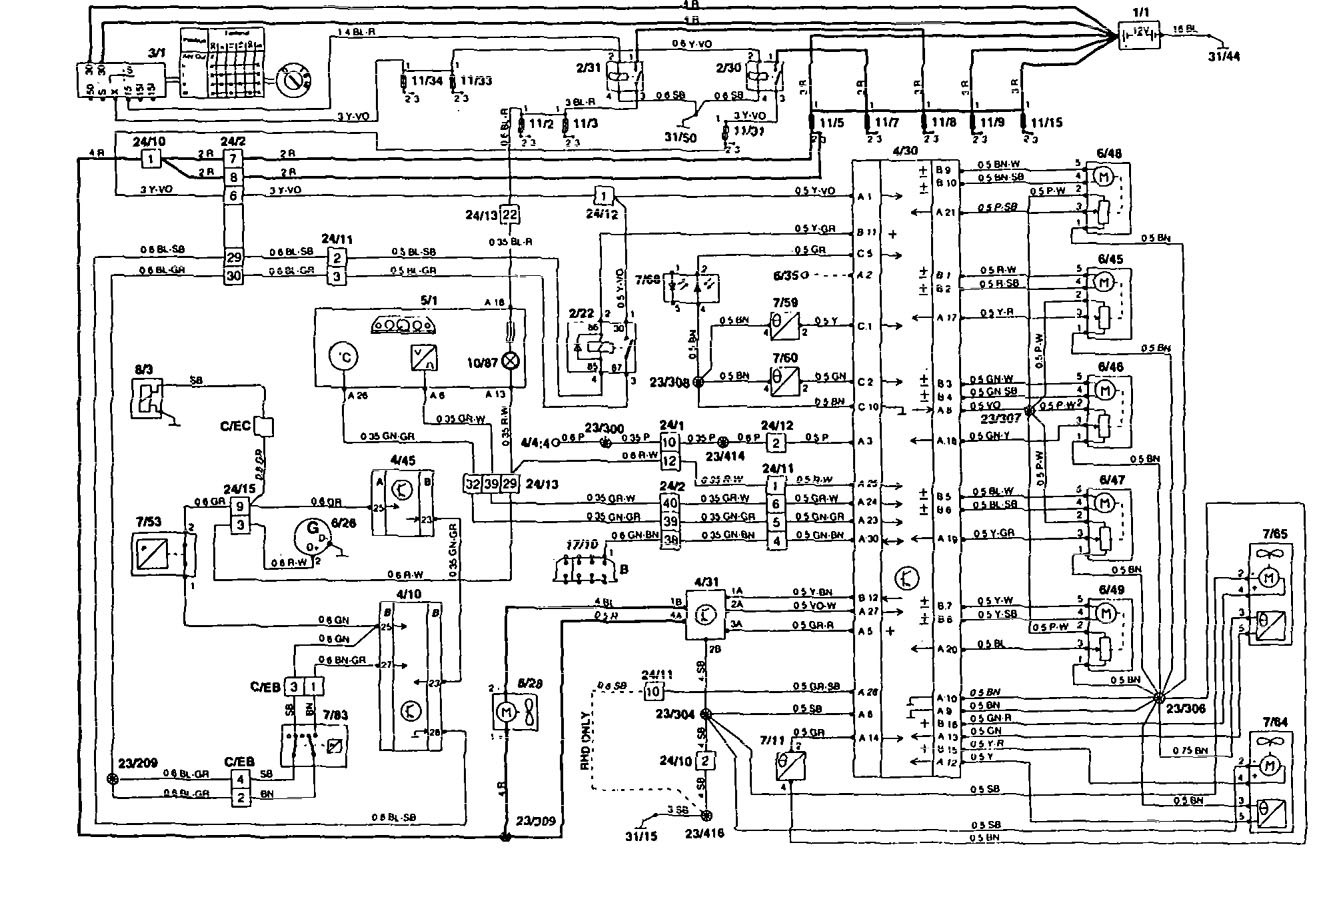 1994 Volvo 850 Wiring Diagram